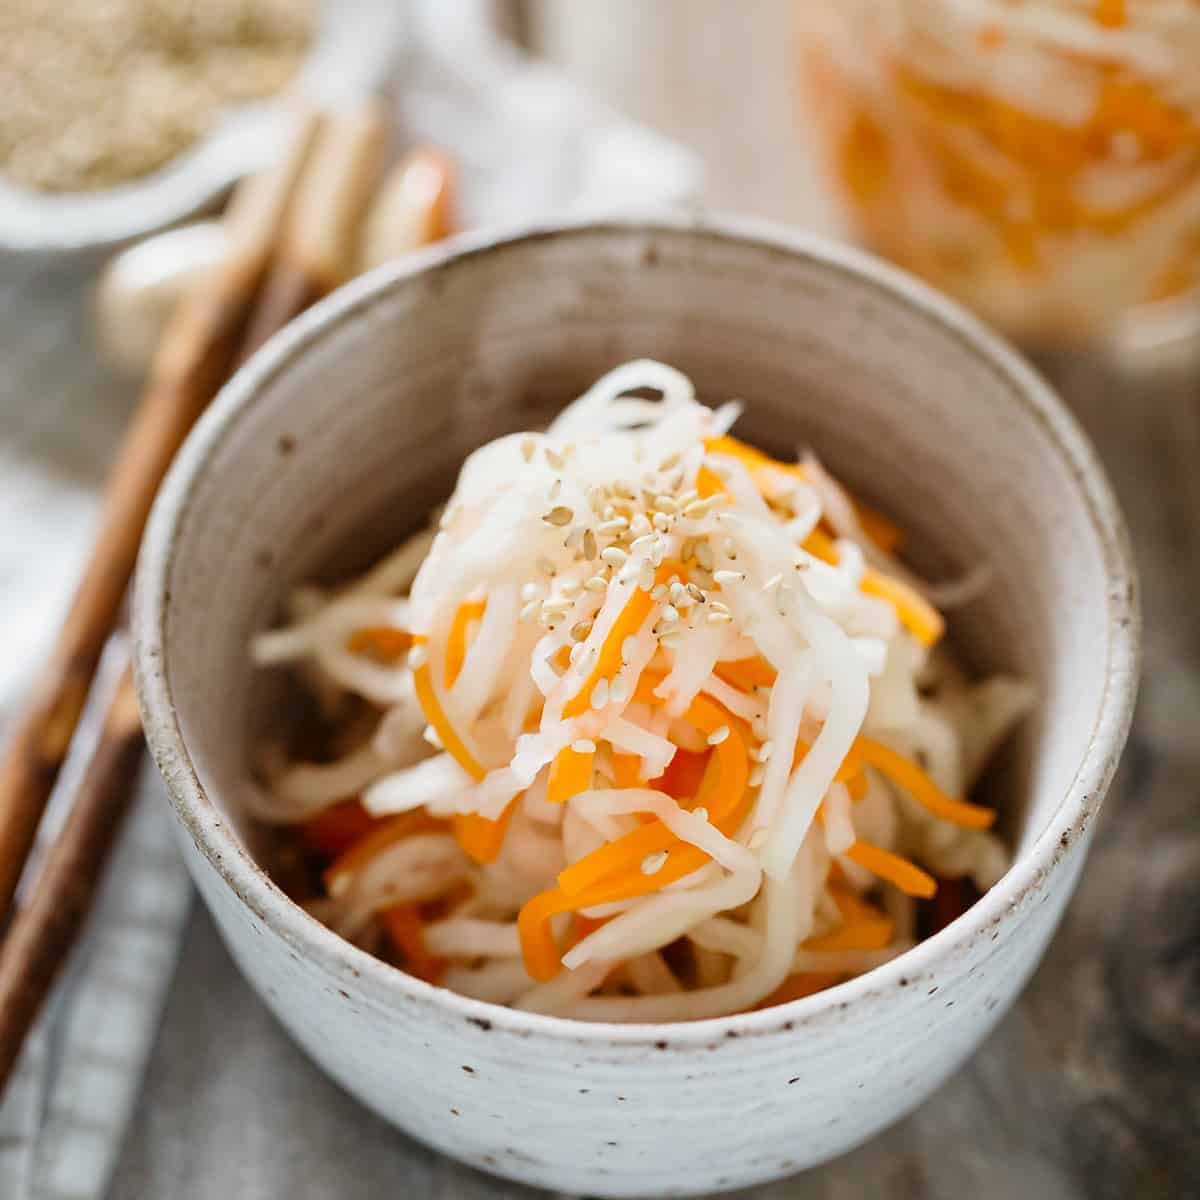 pickled daikon and carrot served in a small bowl with a pair of chopsticks